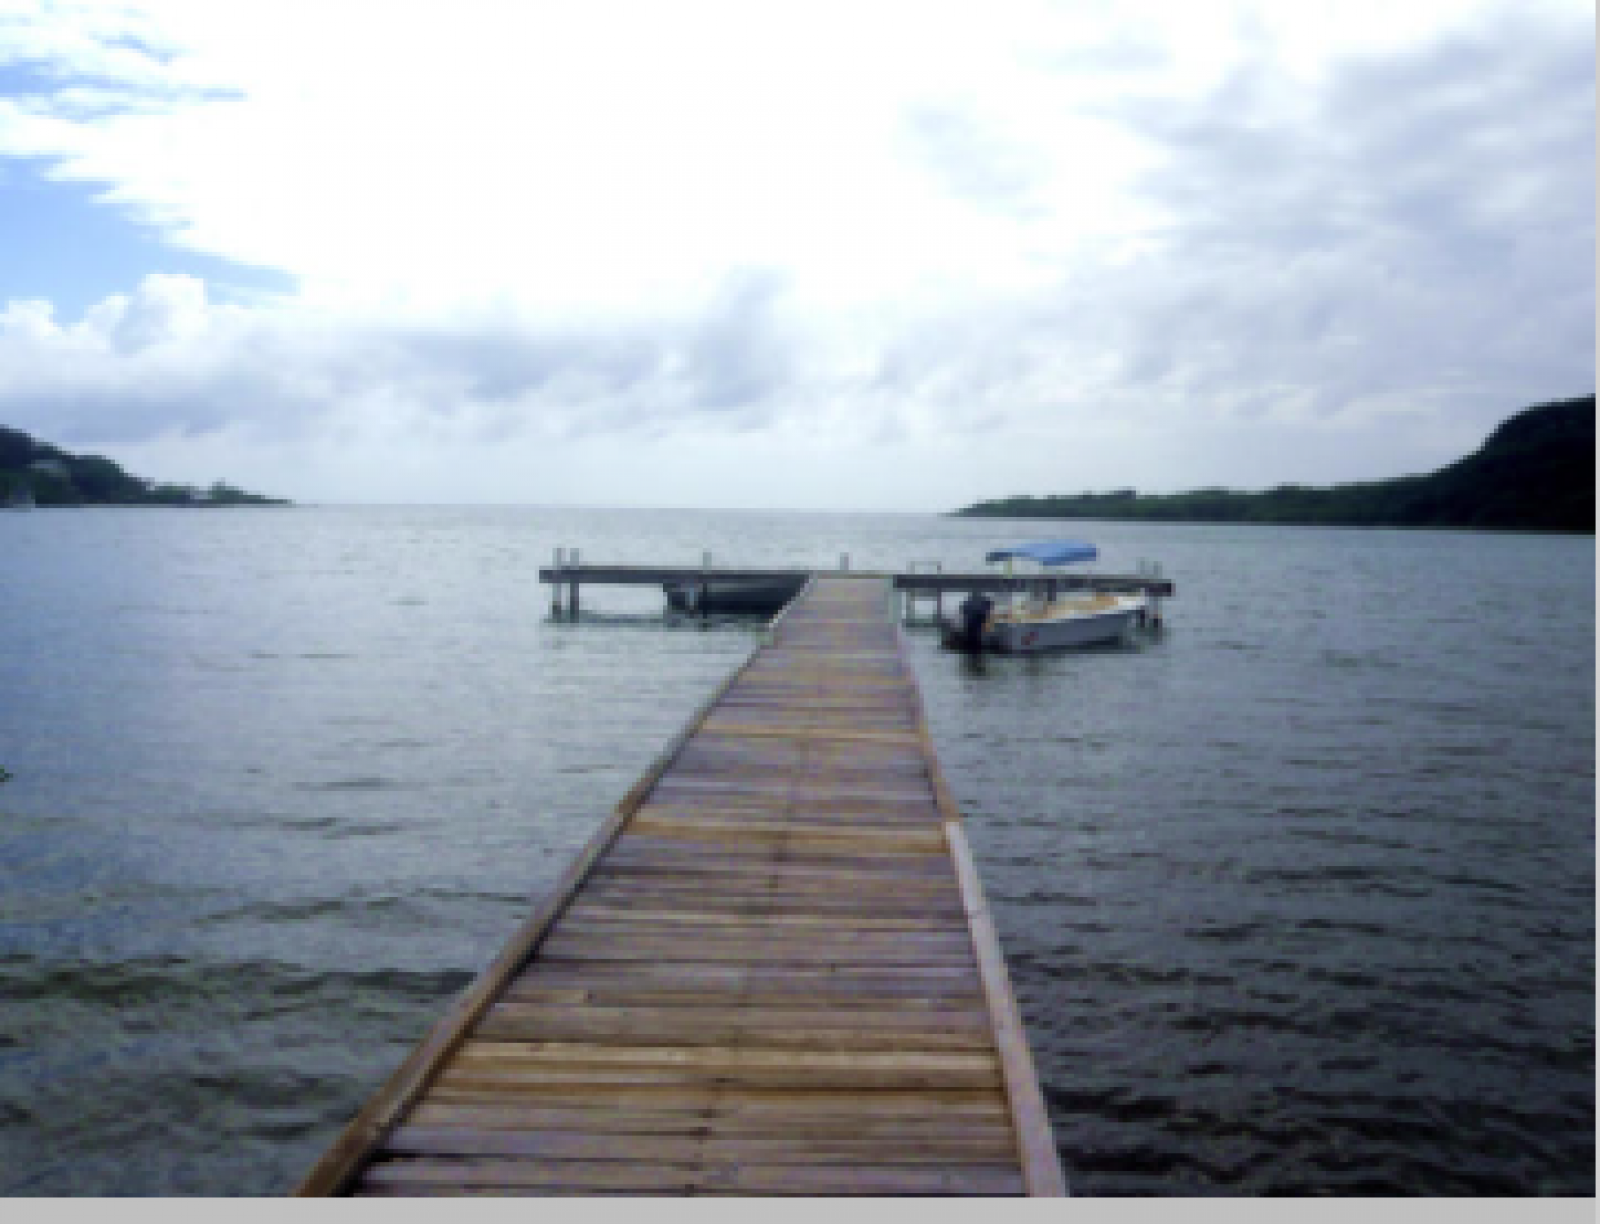 Perfect for mooring a boat, snorkeling, fish, diving